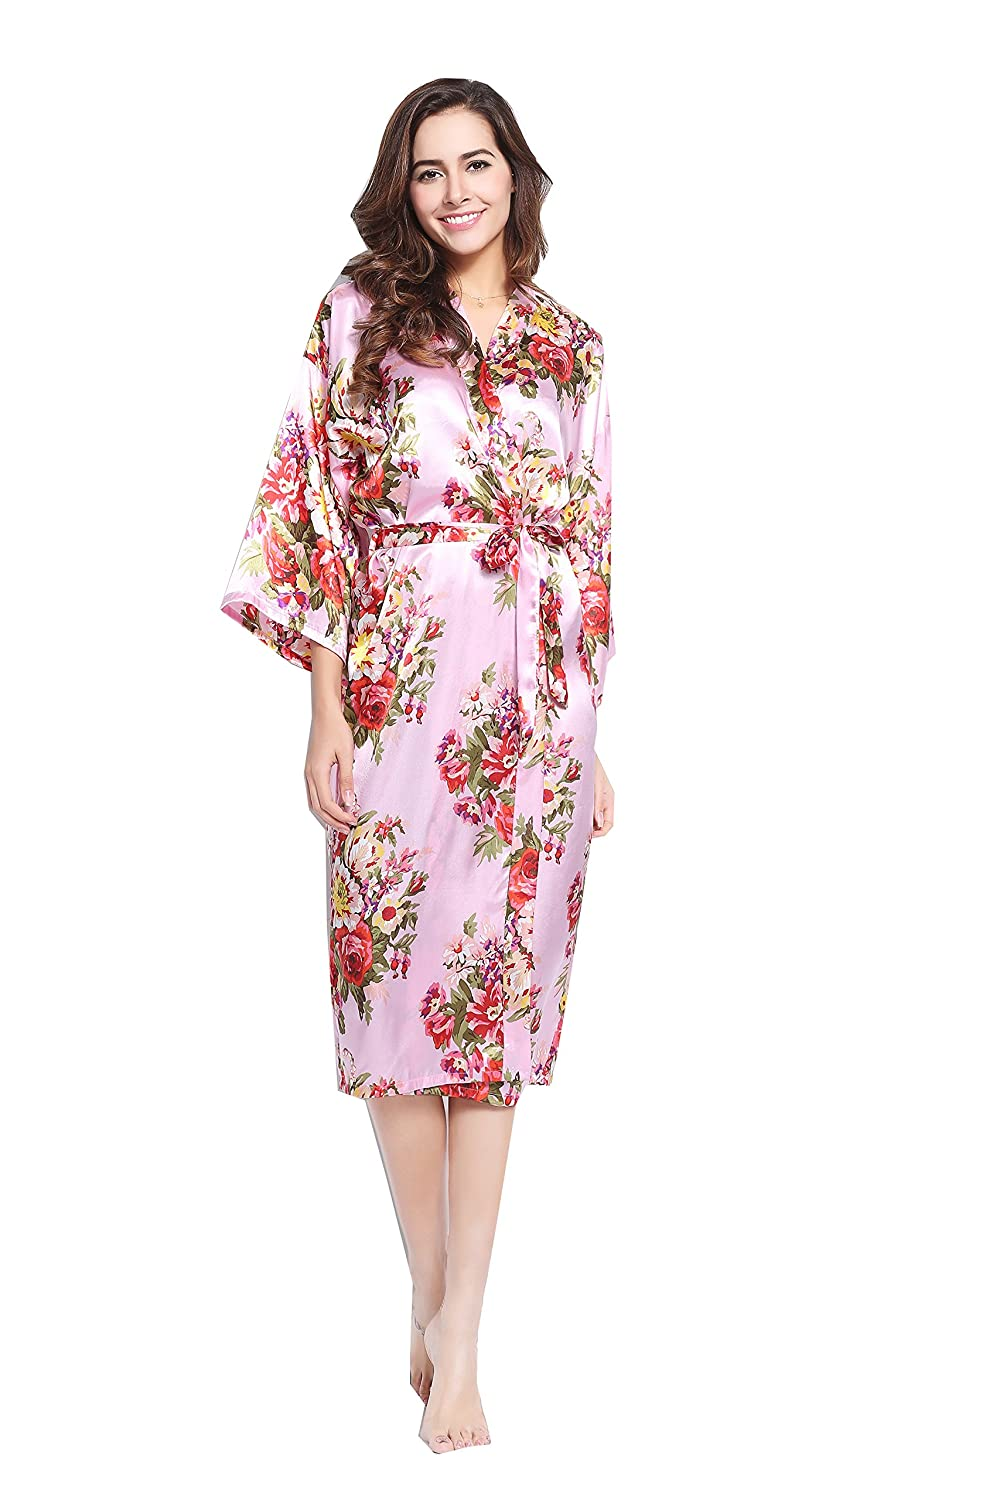 zarachilable 14 Color Long Robe Floral Kimono de la novia dama Robe ...